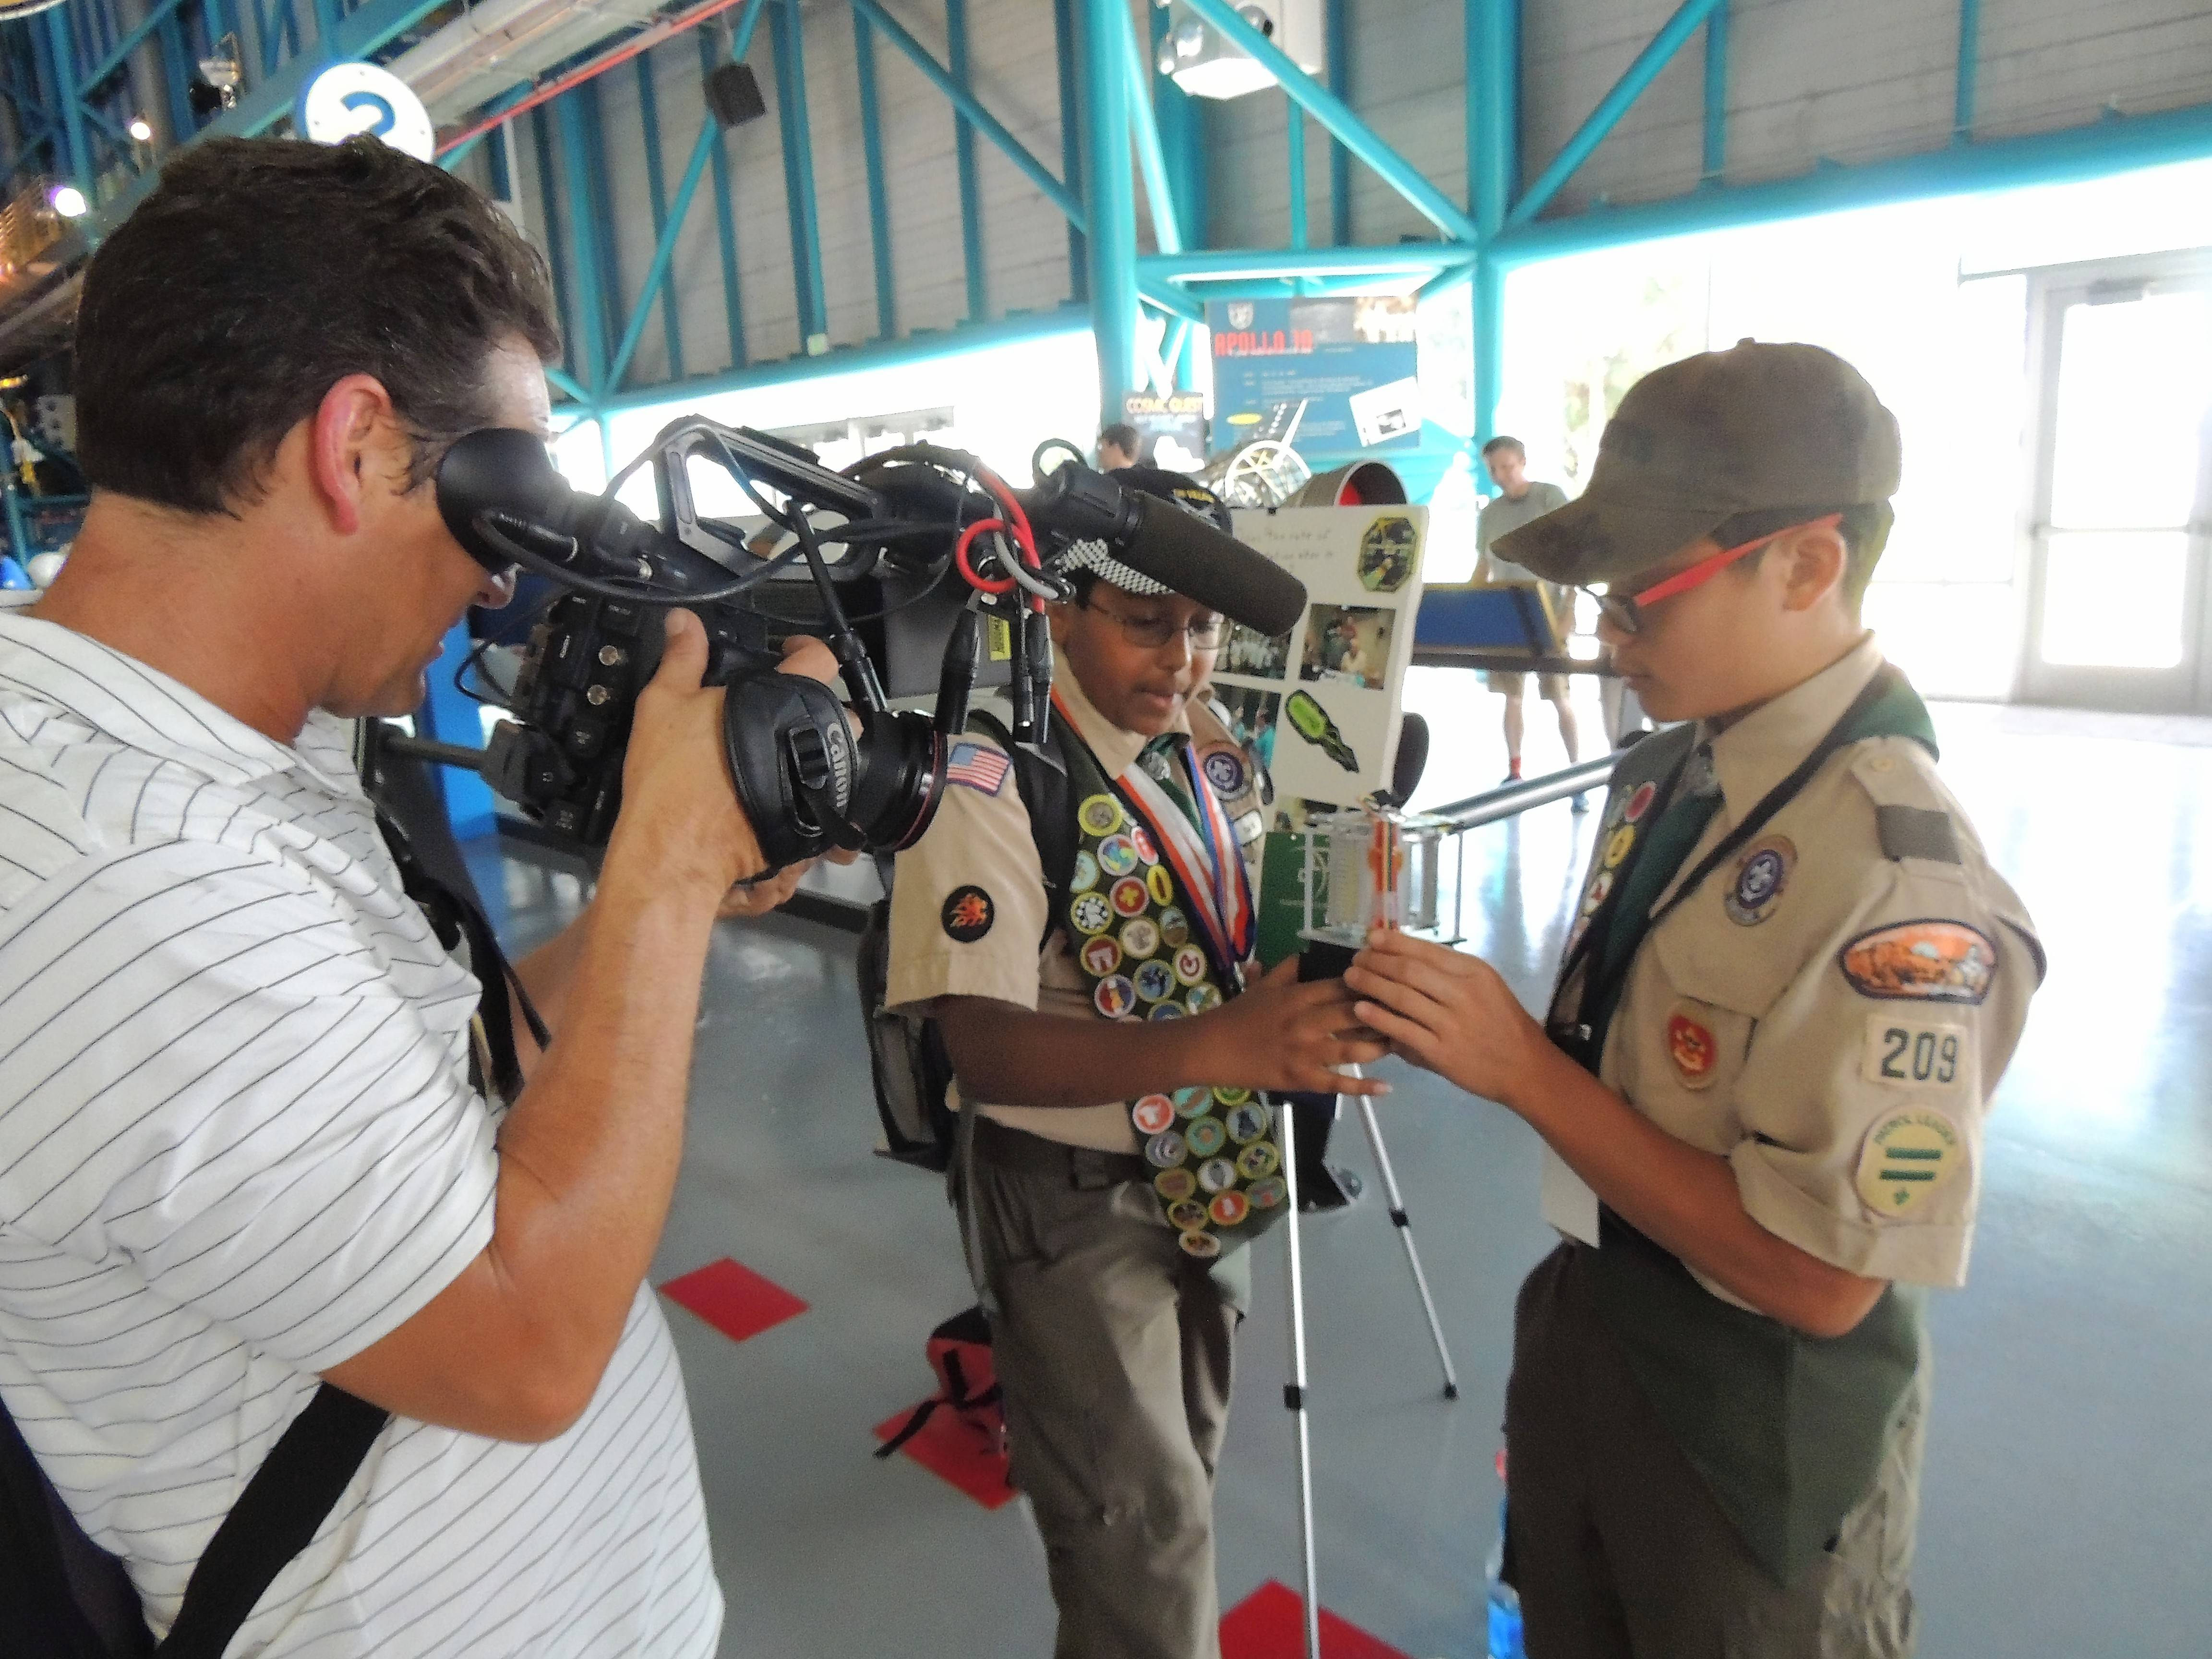 Scouts Saipranav Venkatakrishnan and Elliot Lee present their project to the local press.